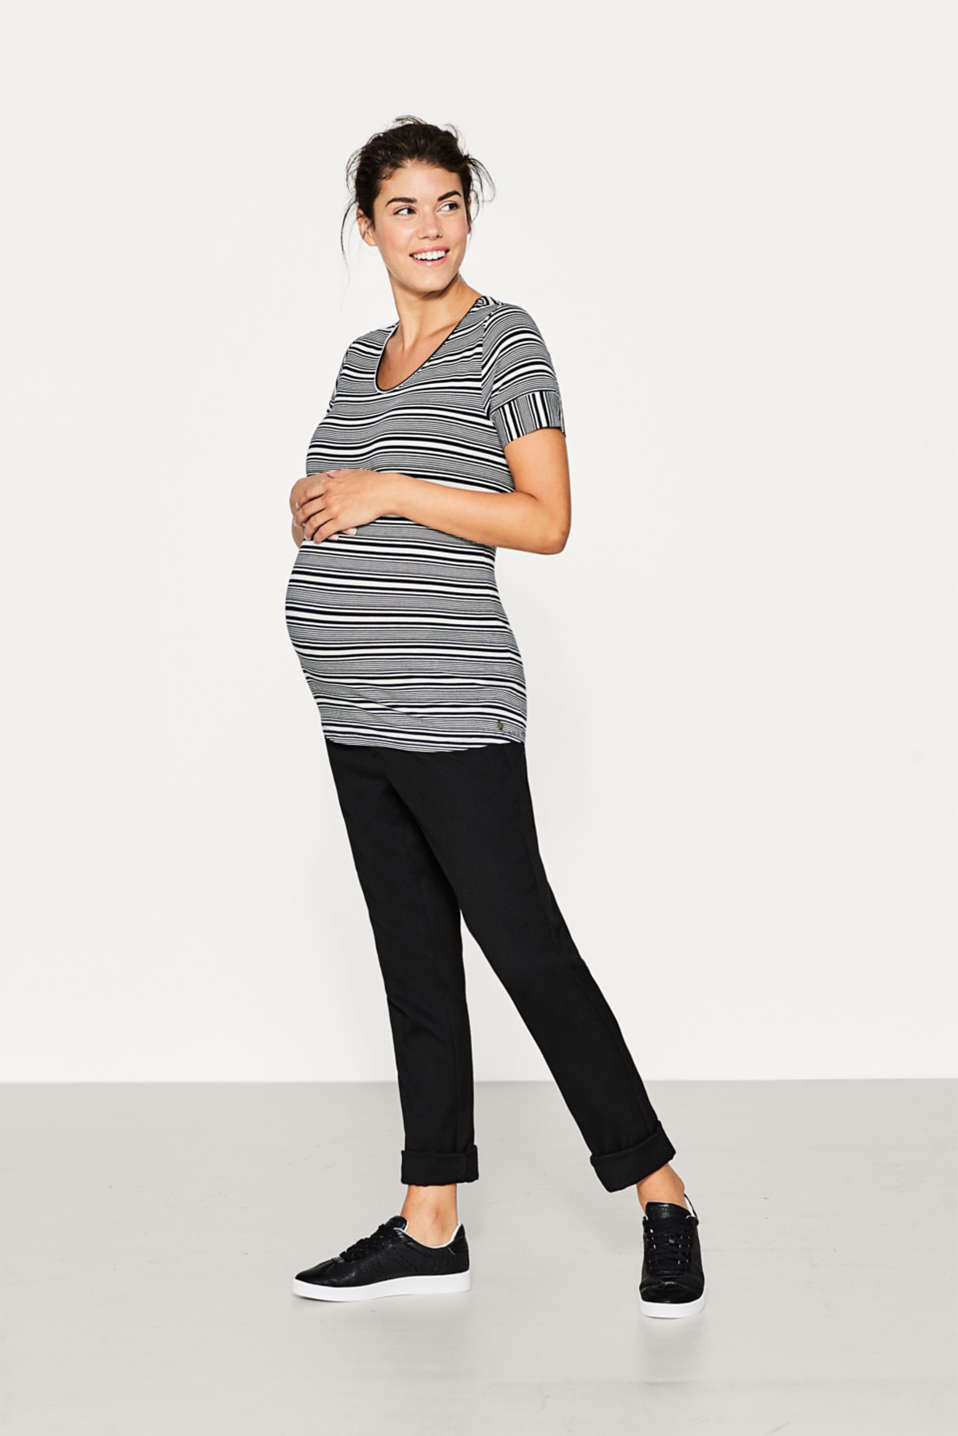 Flowing stretch top with new stripes